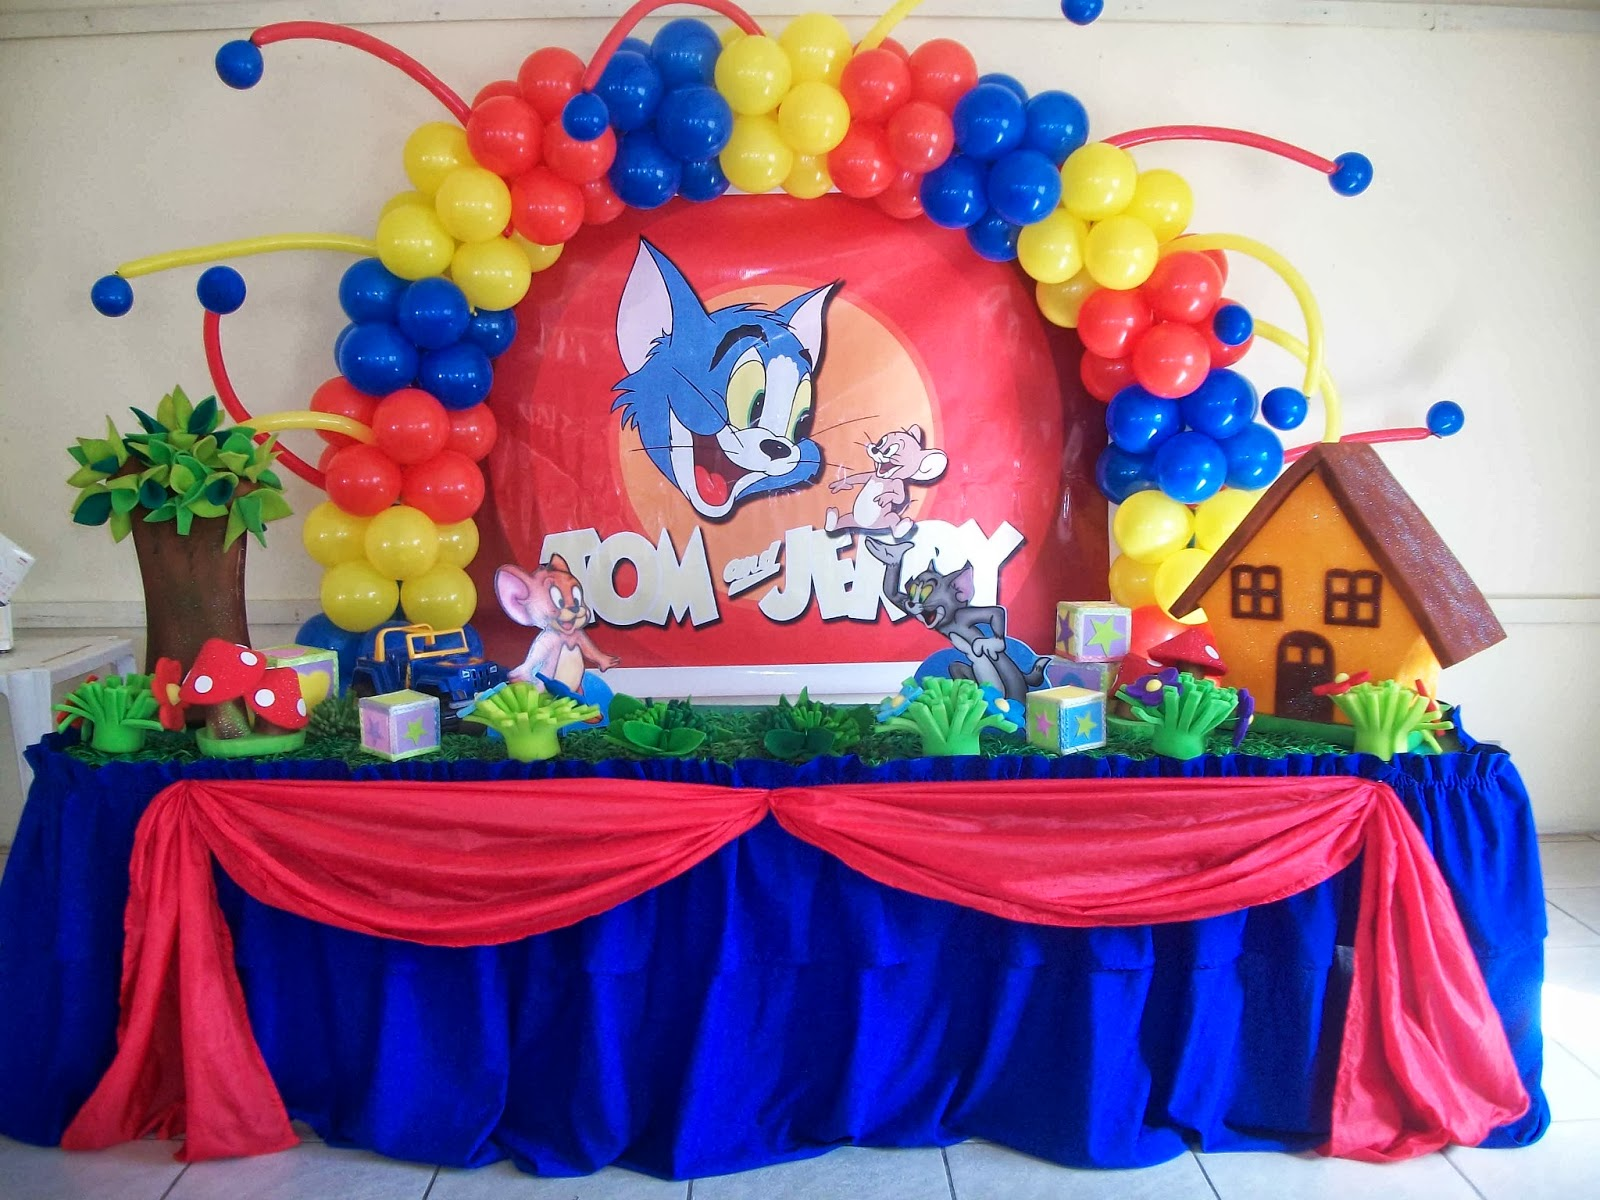 Tom Jerry birthday party theme ideas in Pakistan